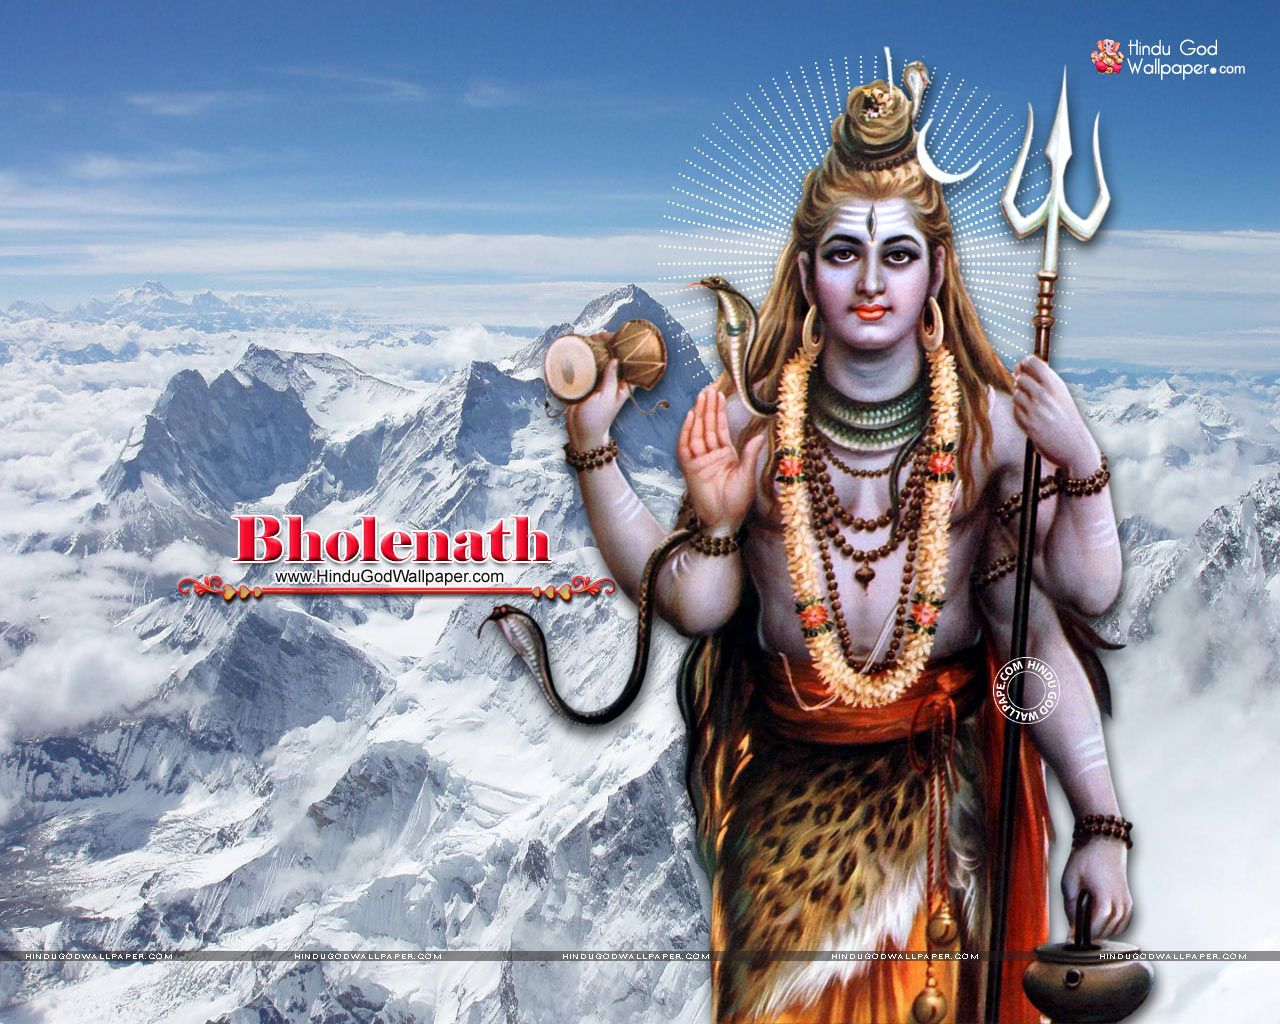 Bholenath Hd Wallpapers Images Photos Free Download Shiv Shakthi